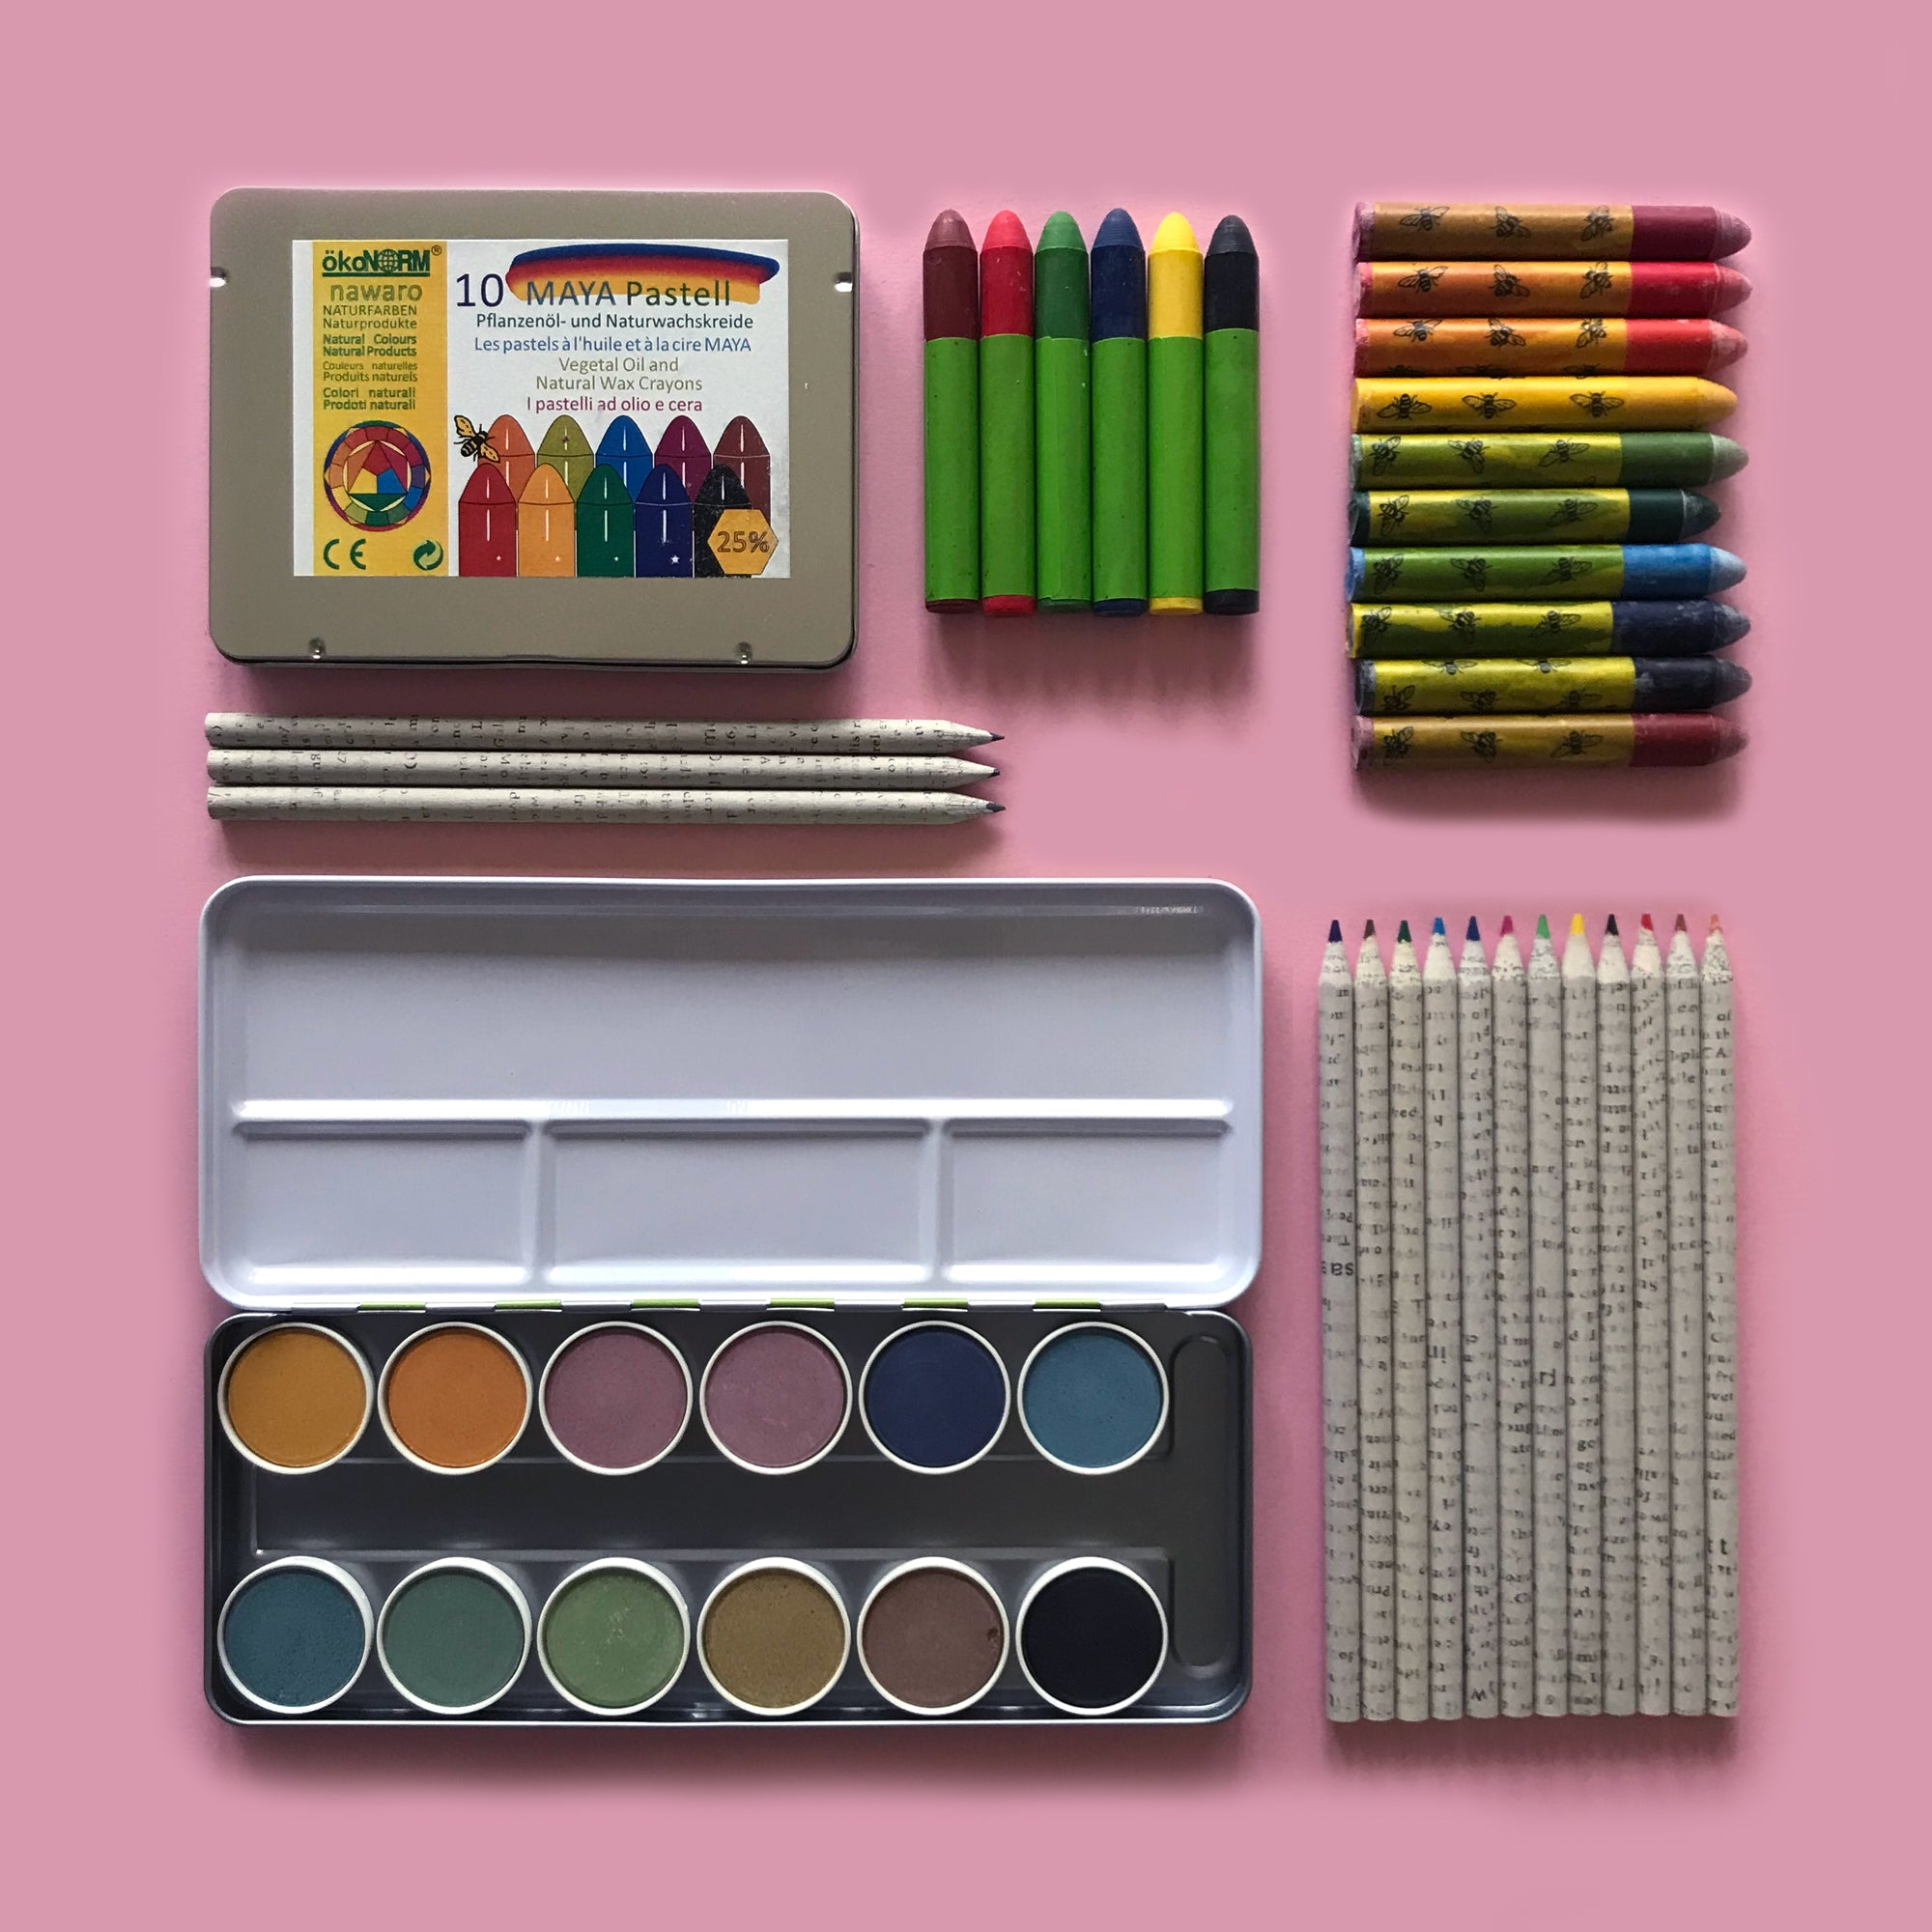 Eco-friendly children's art supplies